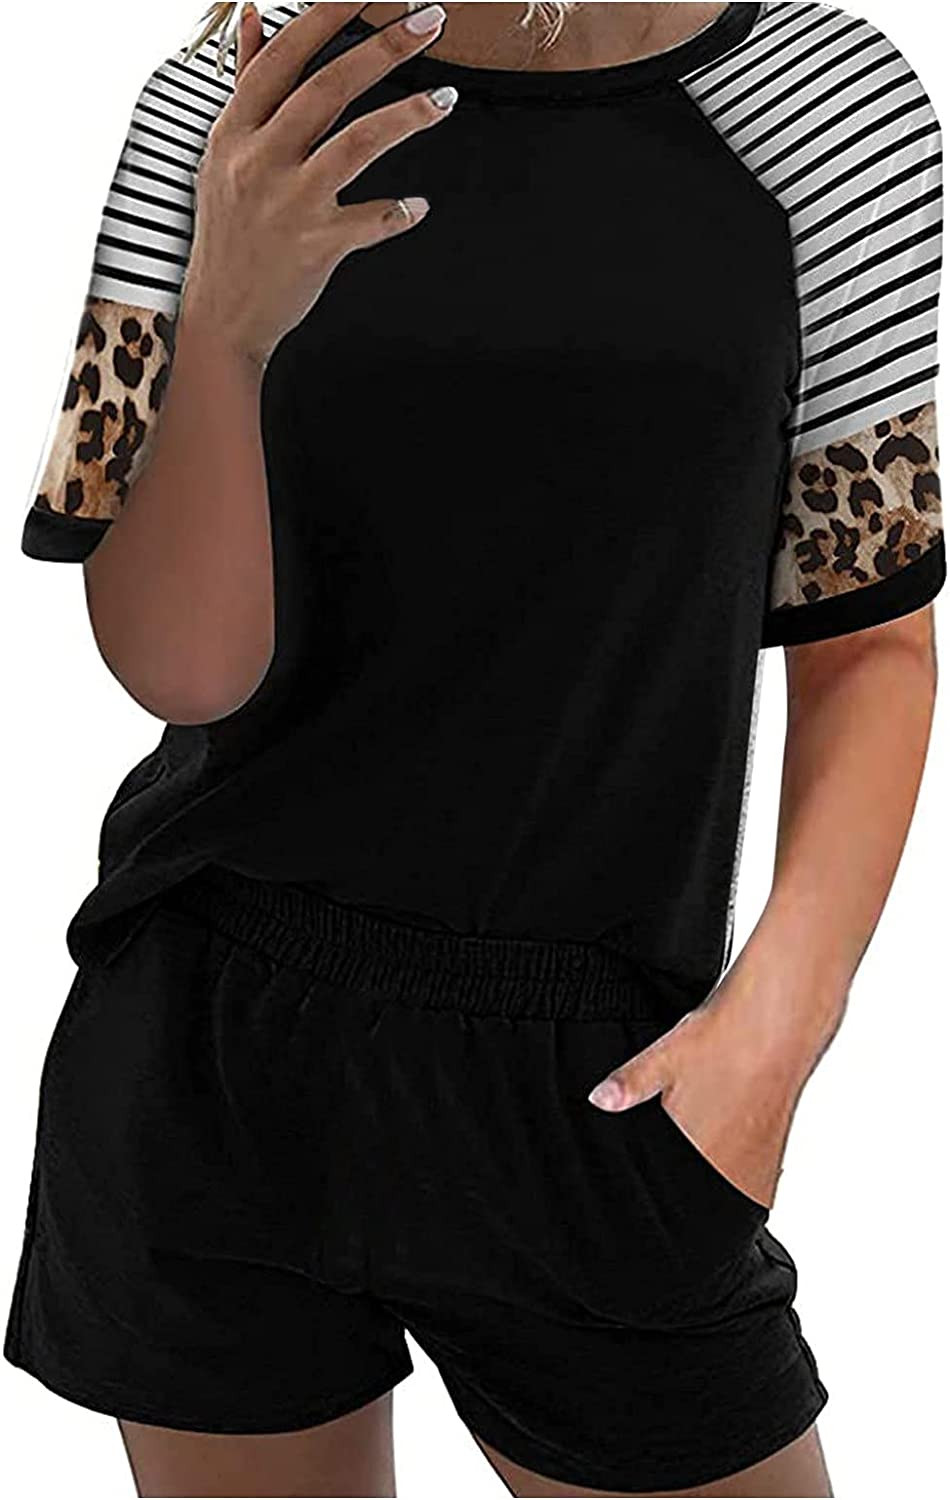 Max 61% OFF Women's Loungewear Athletic Tracksuits 2021 autumn and winter new Pockets: Short with